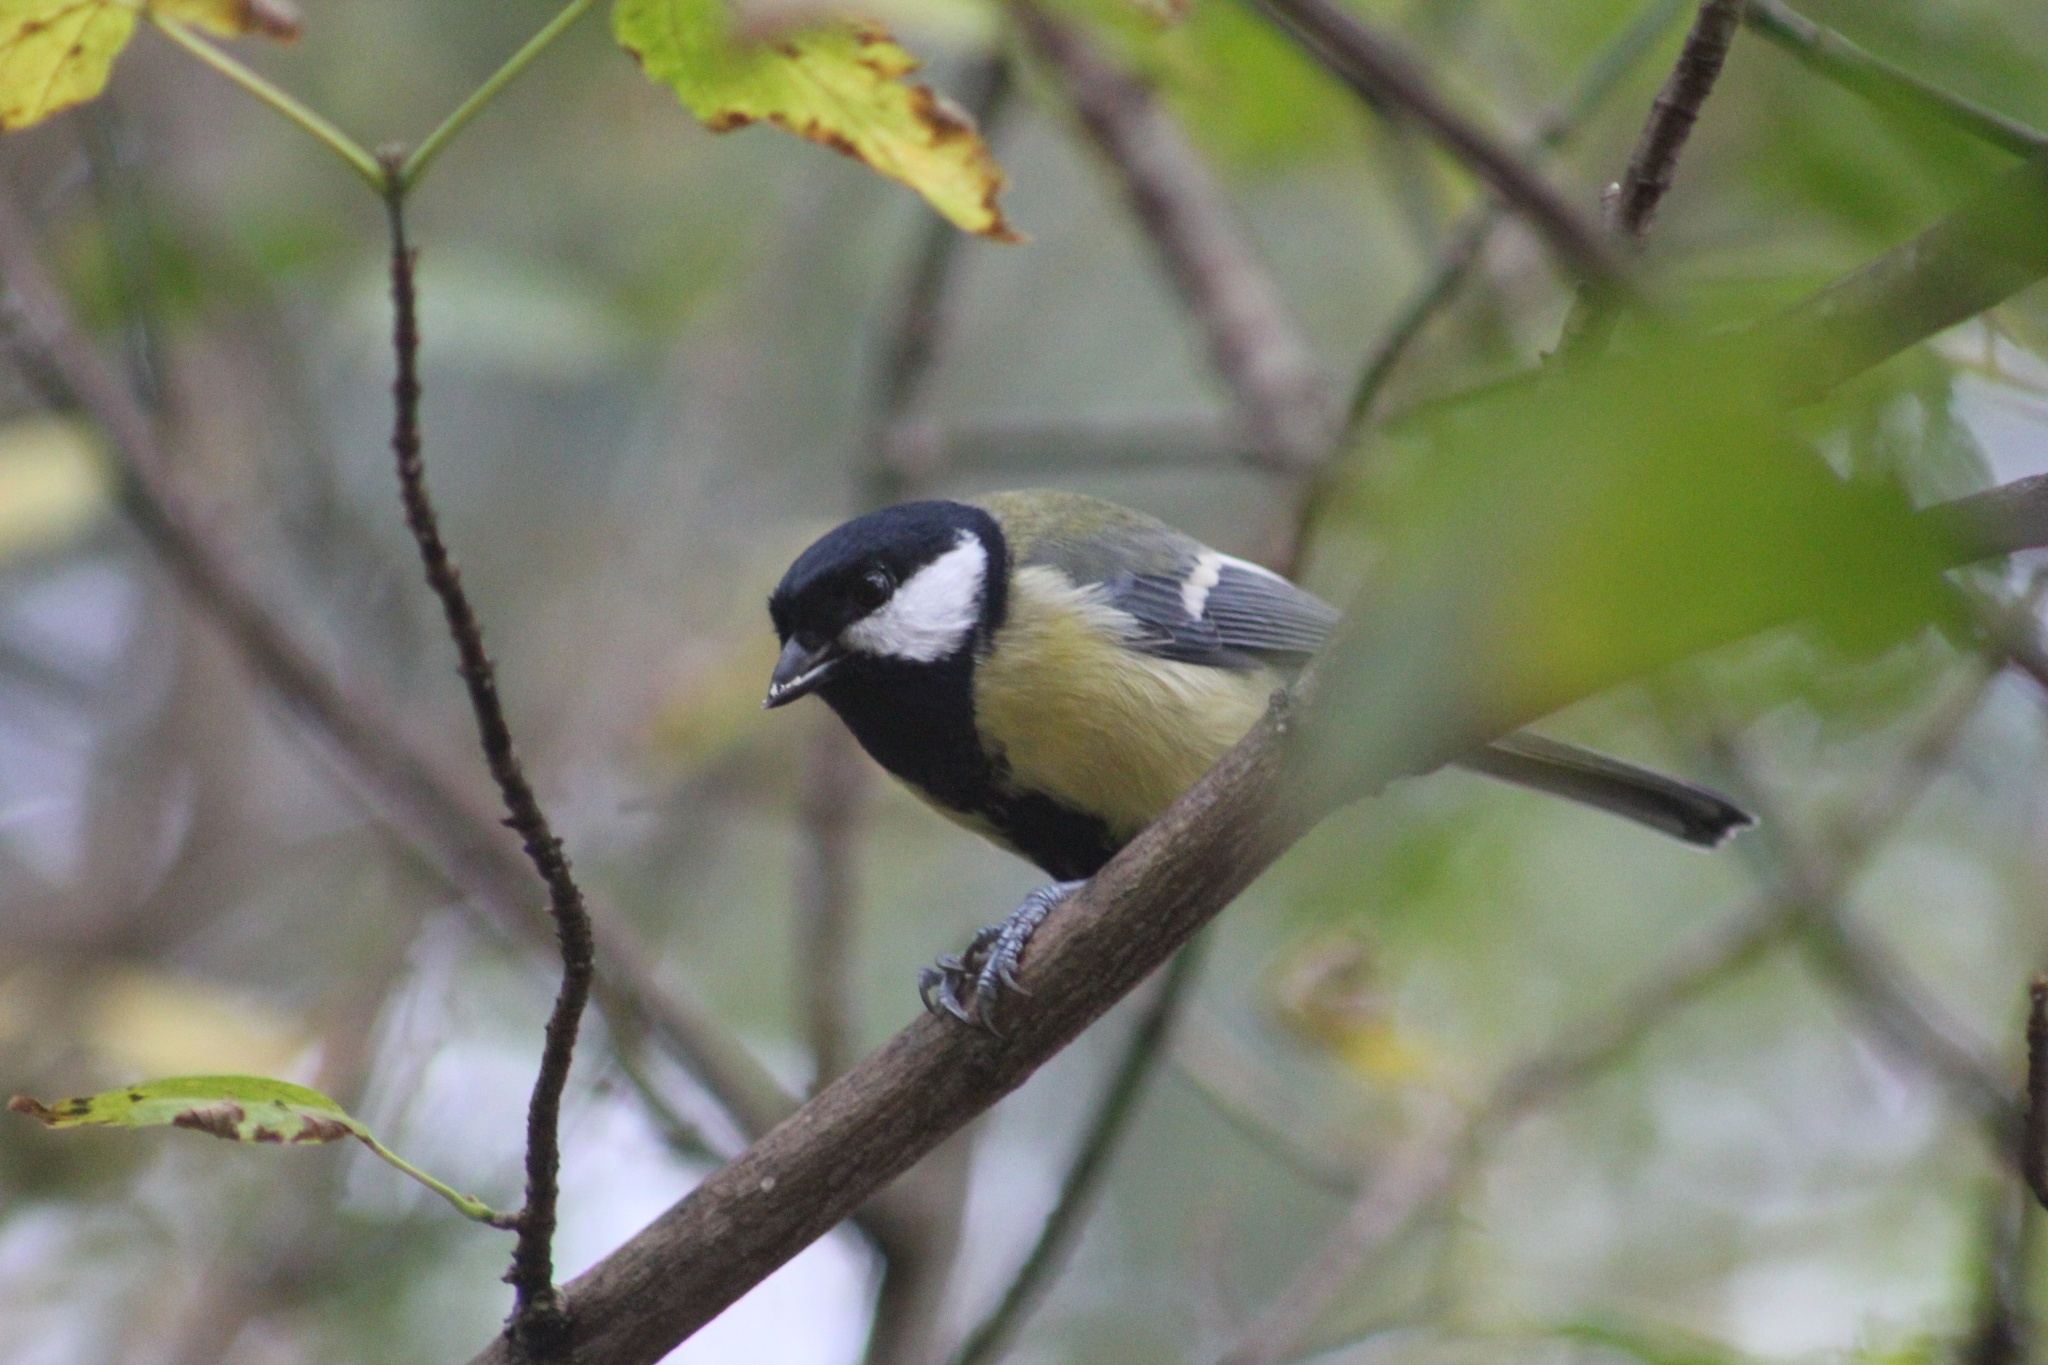 Little Great Tit by Lsb23